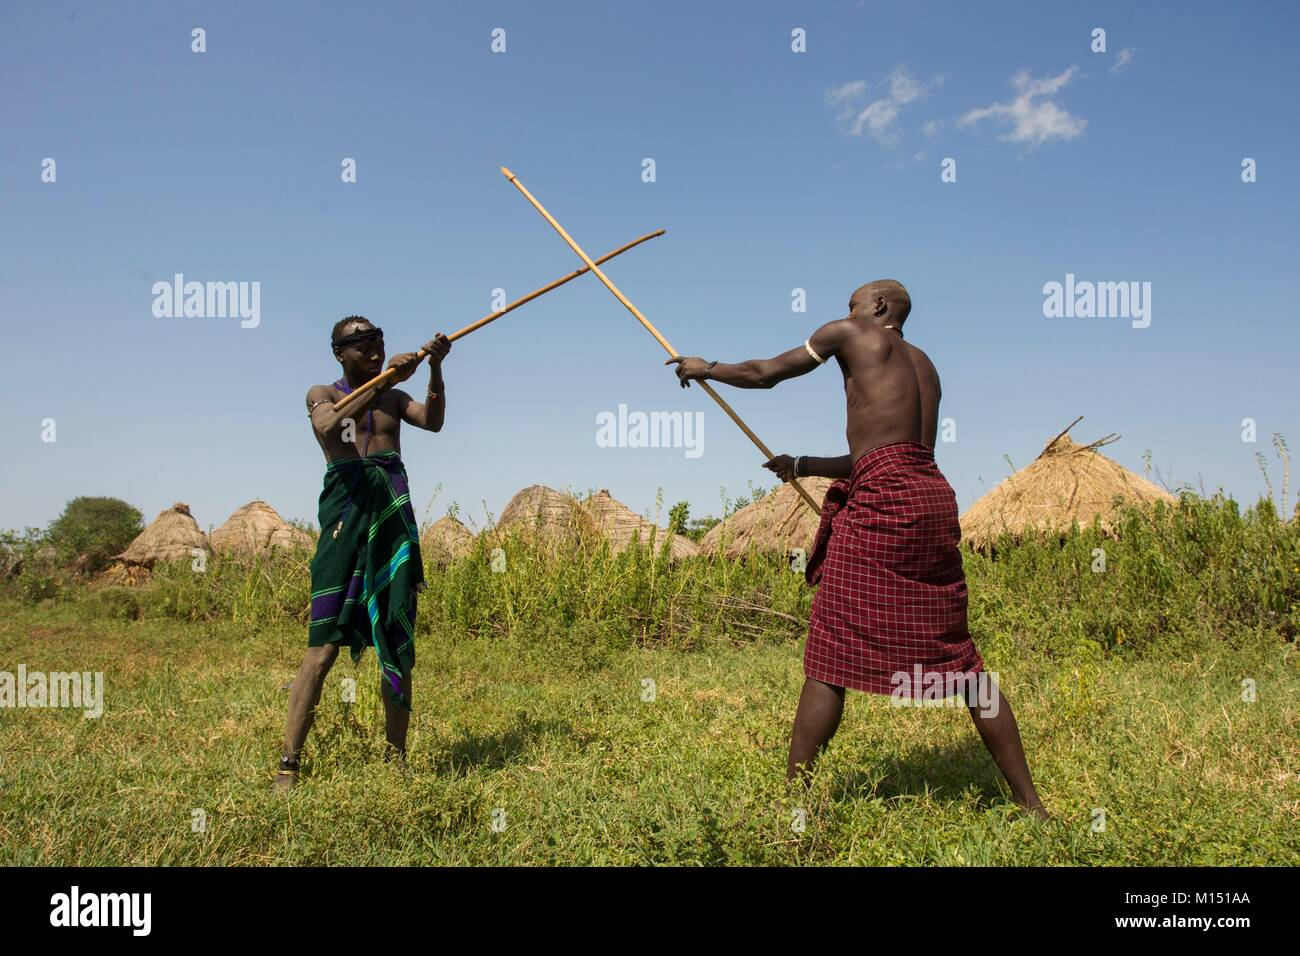 Ethiopia, Lower Omo Valley listed as World Heritage by UNESCO, Mursi tribe, The Donga tournament, duel with poles - Stock Image